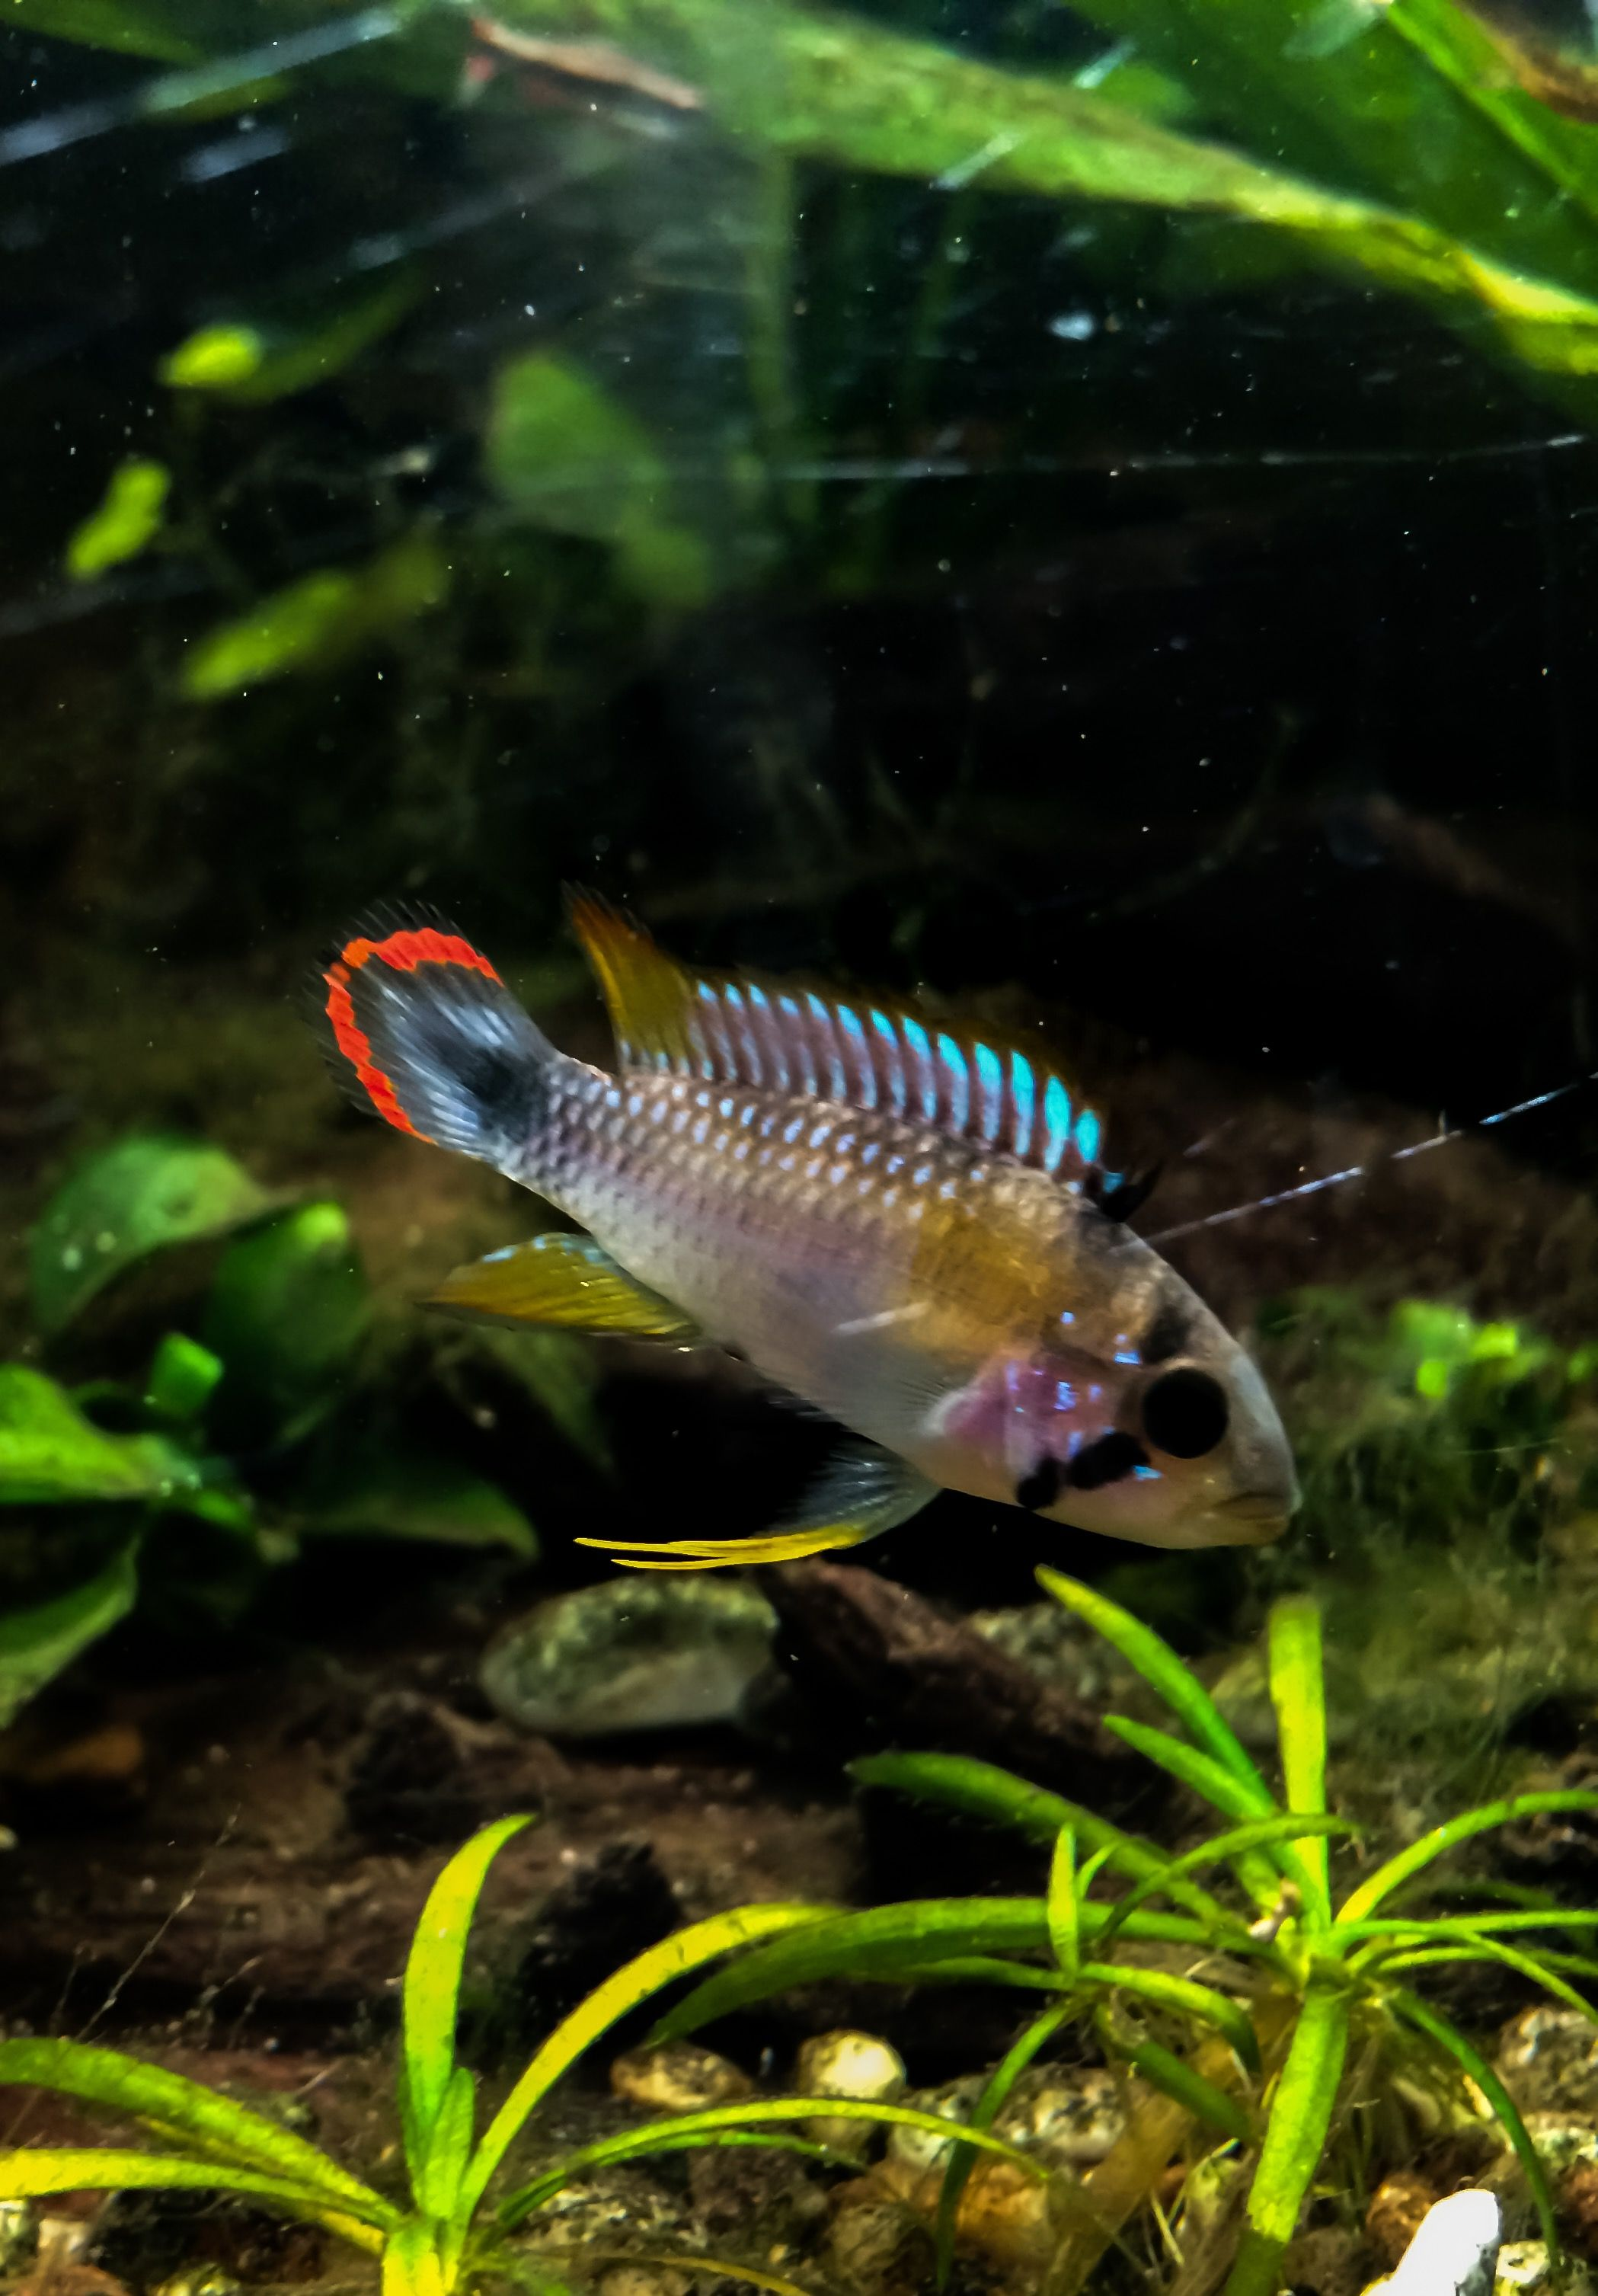 Freshwater aquarium fish for sale online uk - Countless Species Of Fish Are Kept At Home As Pets There Are Several Tropical Fish Online Stores